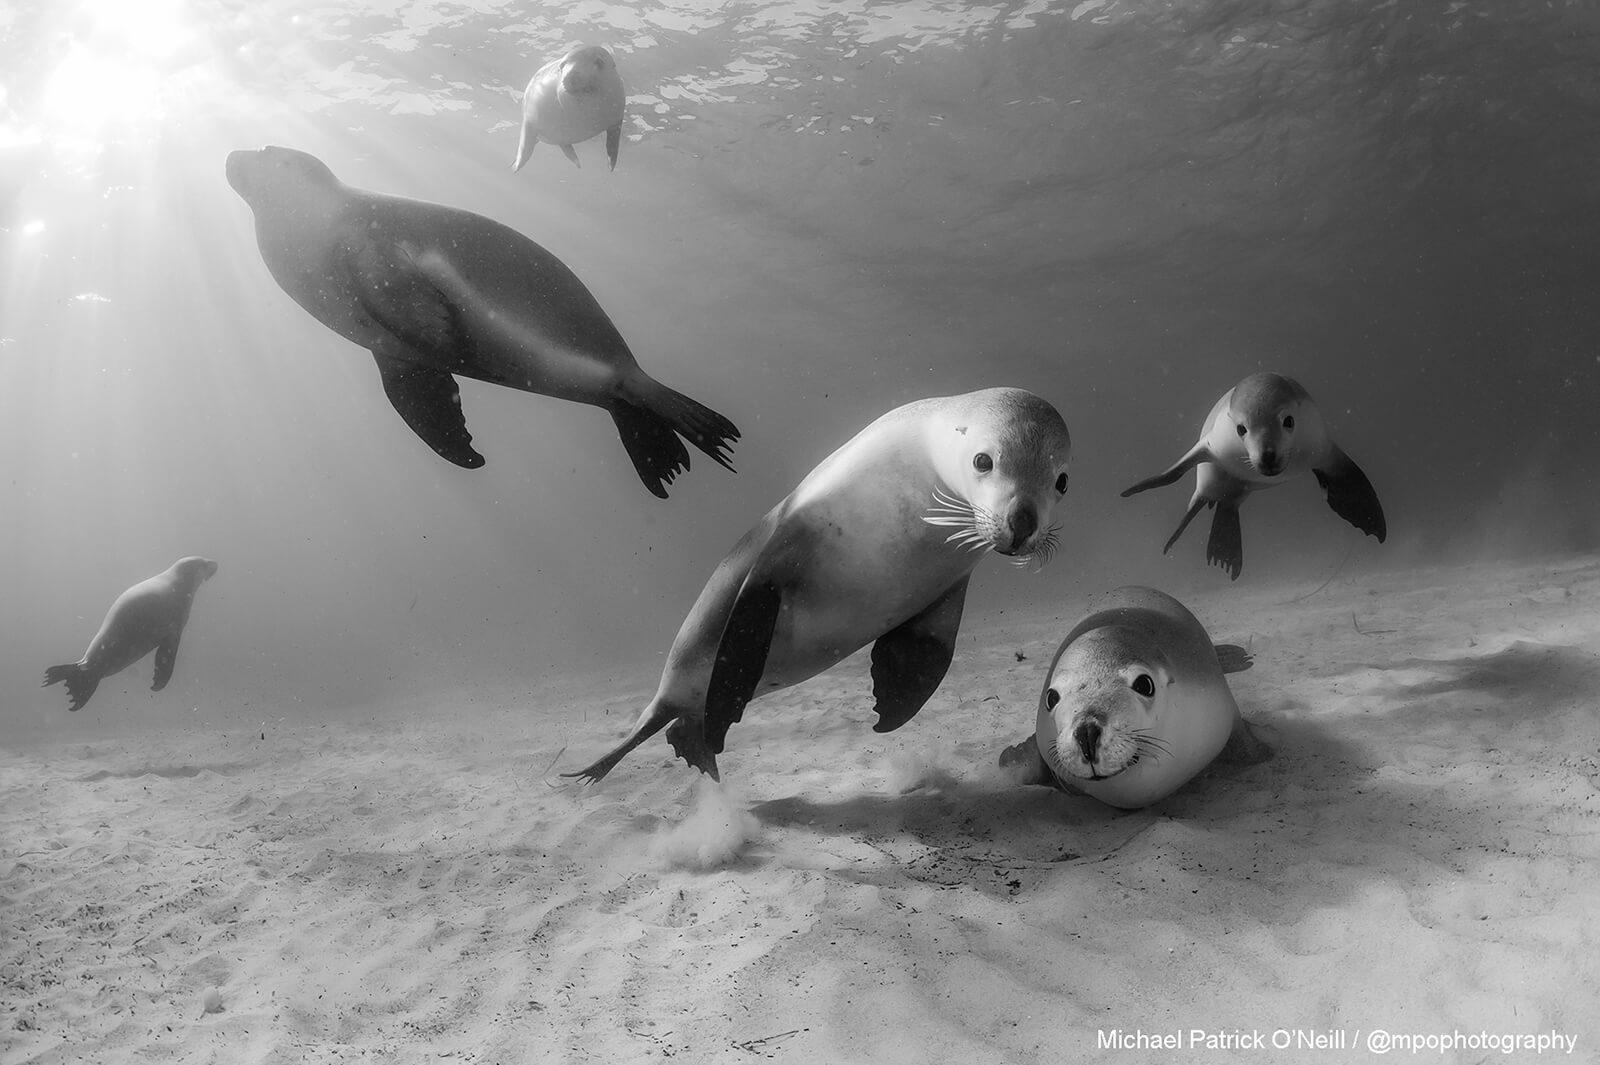 Underwater photography by Michael Patrick O'Neill